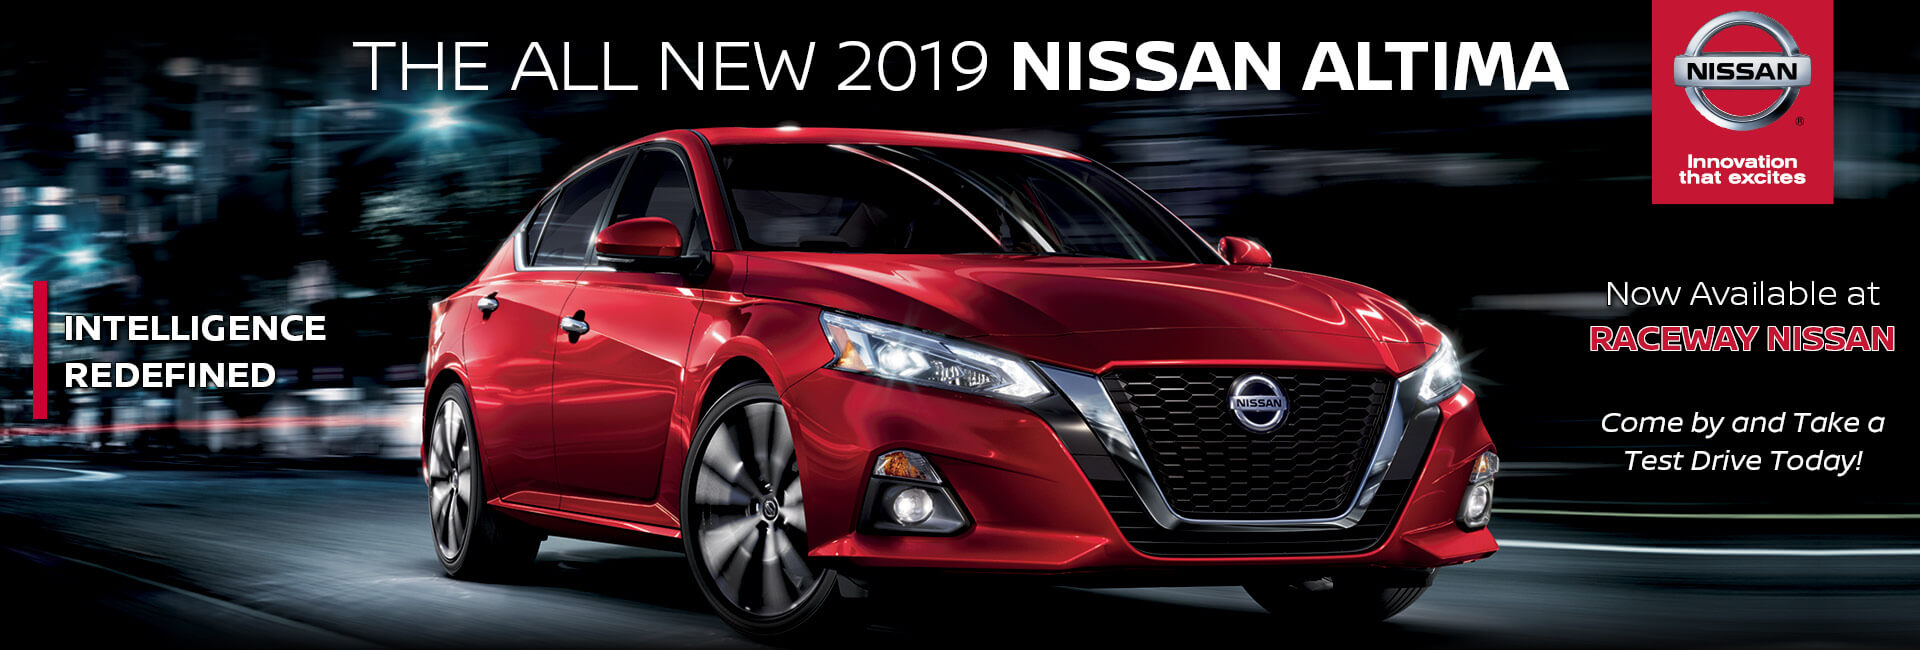 All-New 2019 Altima